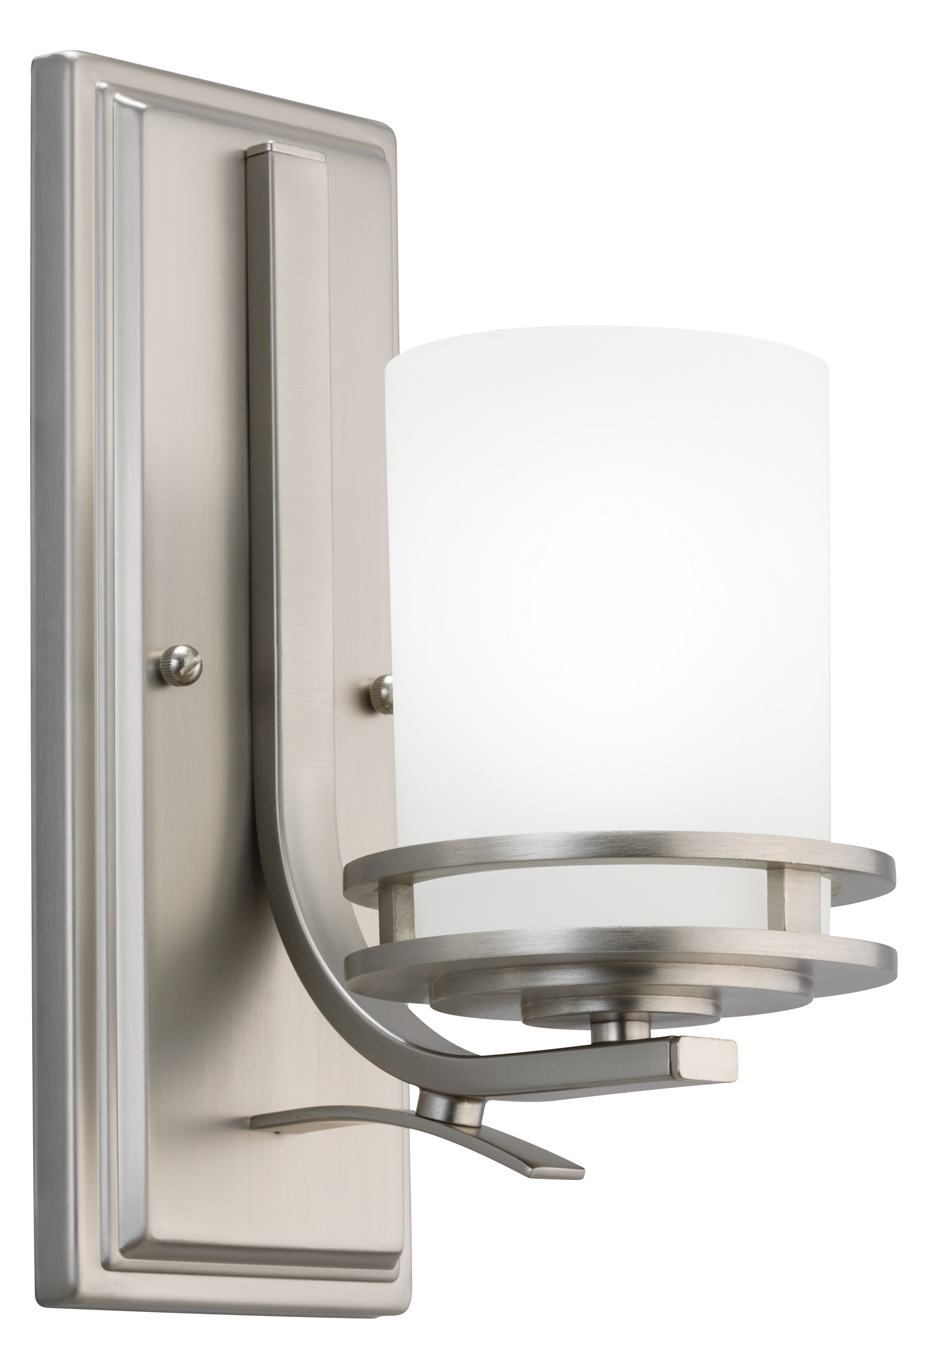 Kichler Kichler 5076Ni Brushed Nickel 1 Light Wall Sconce From The Hendrik Collection